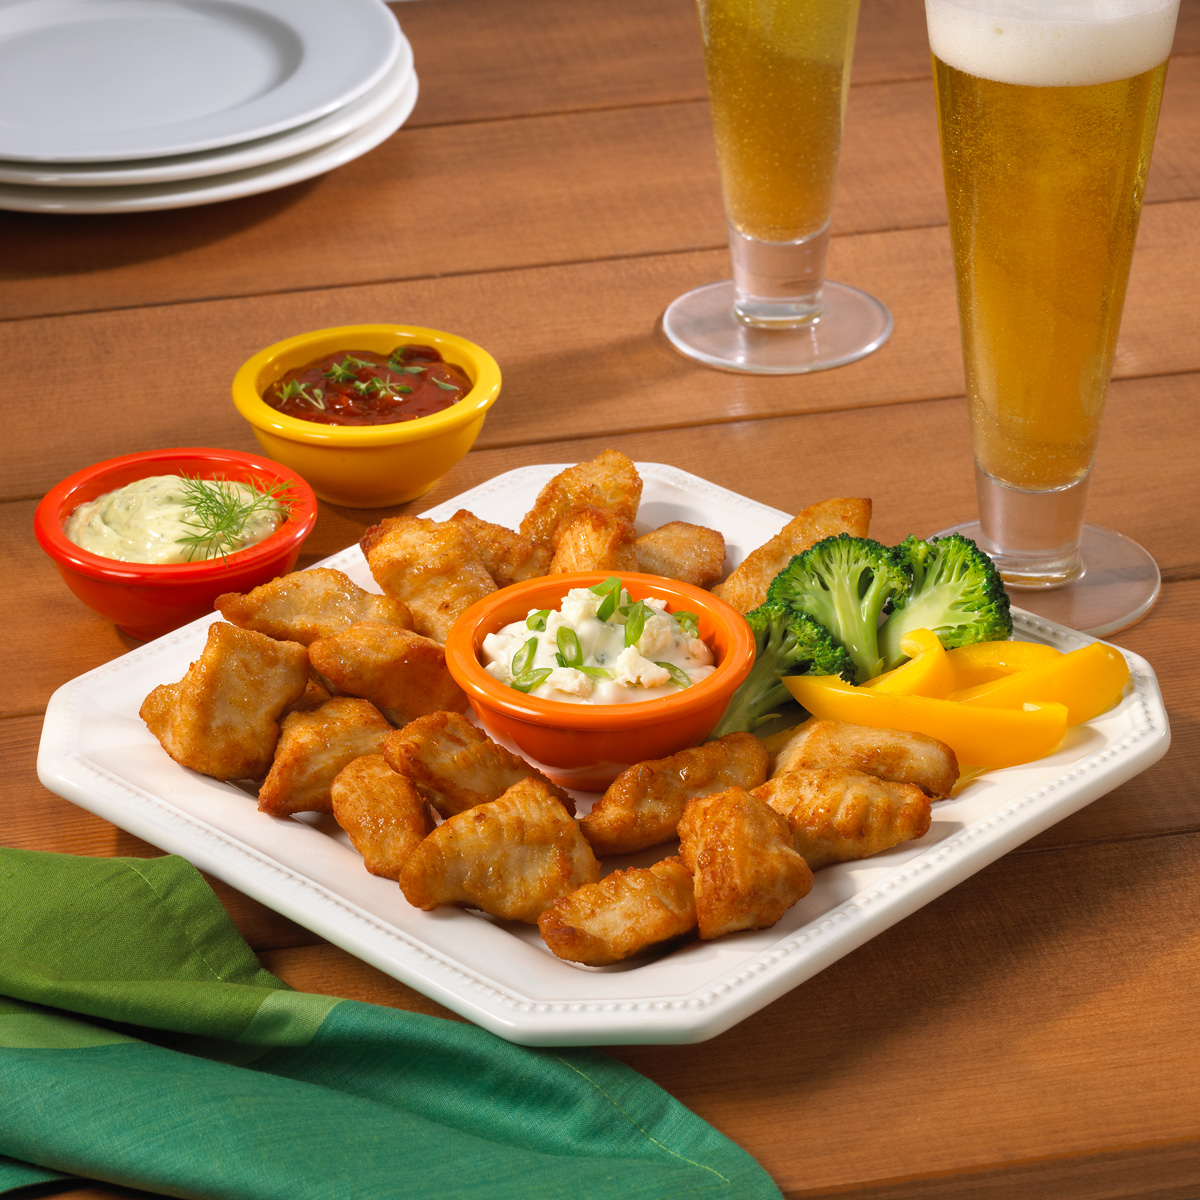 Skinny Dip'n Chik'n Naked Boneless Wings image